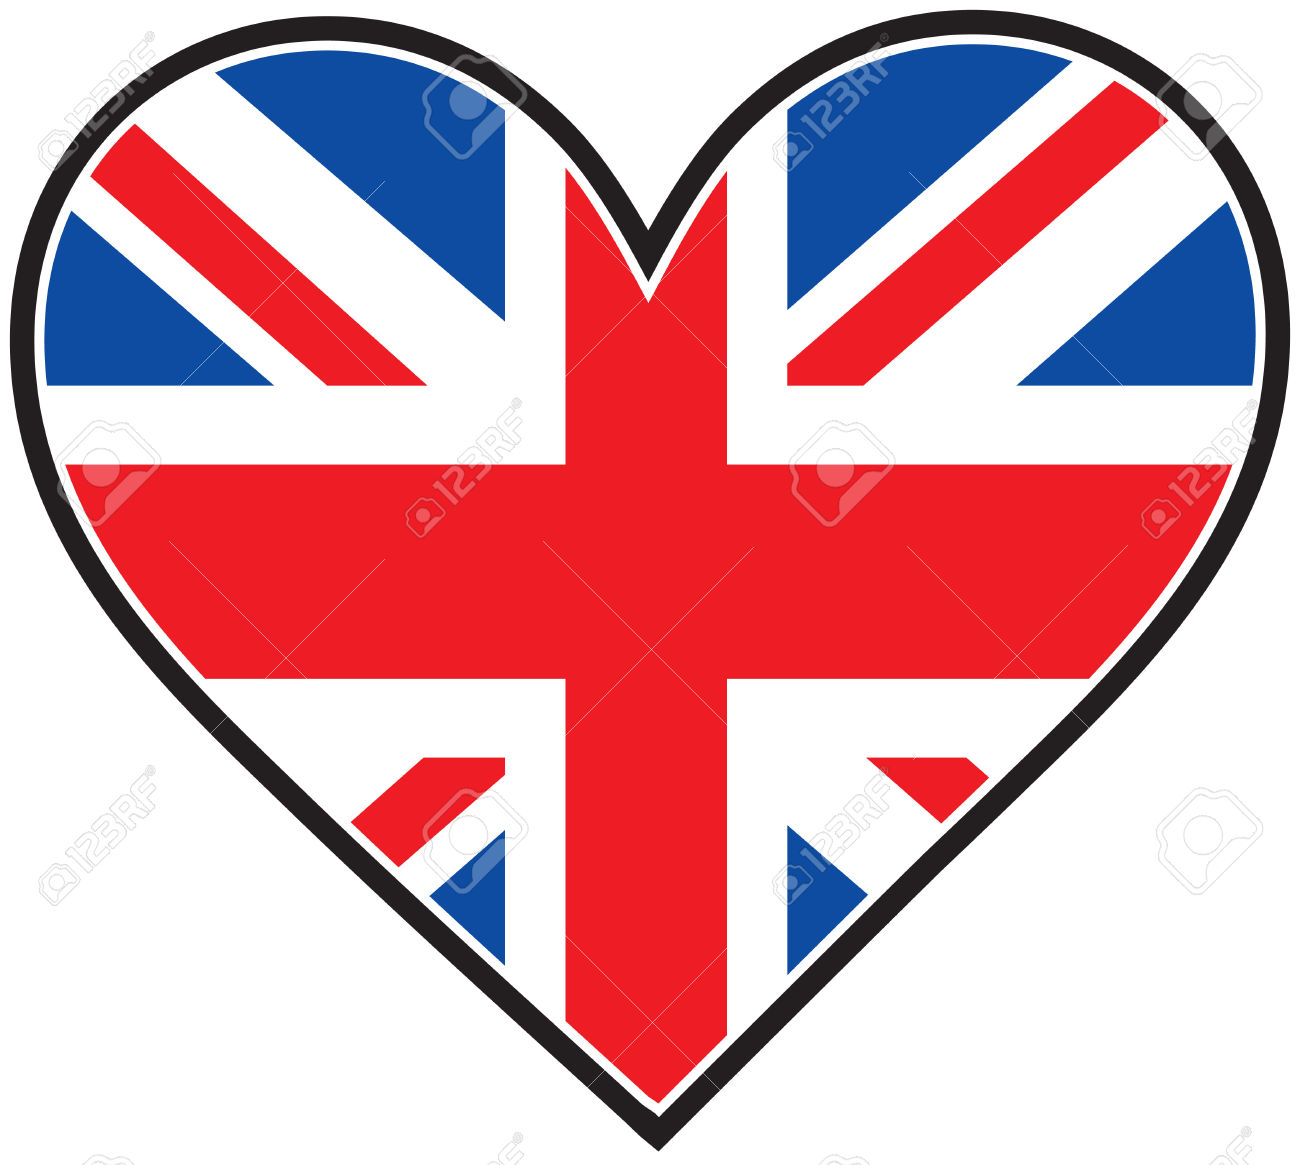 Free british clipart clip art free library England Clipart Free | Free download best England Clipart Free on ... clip art free library